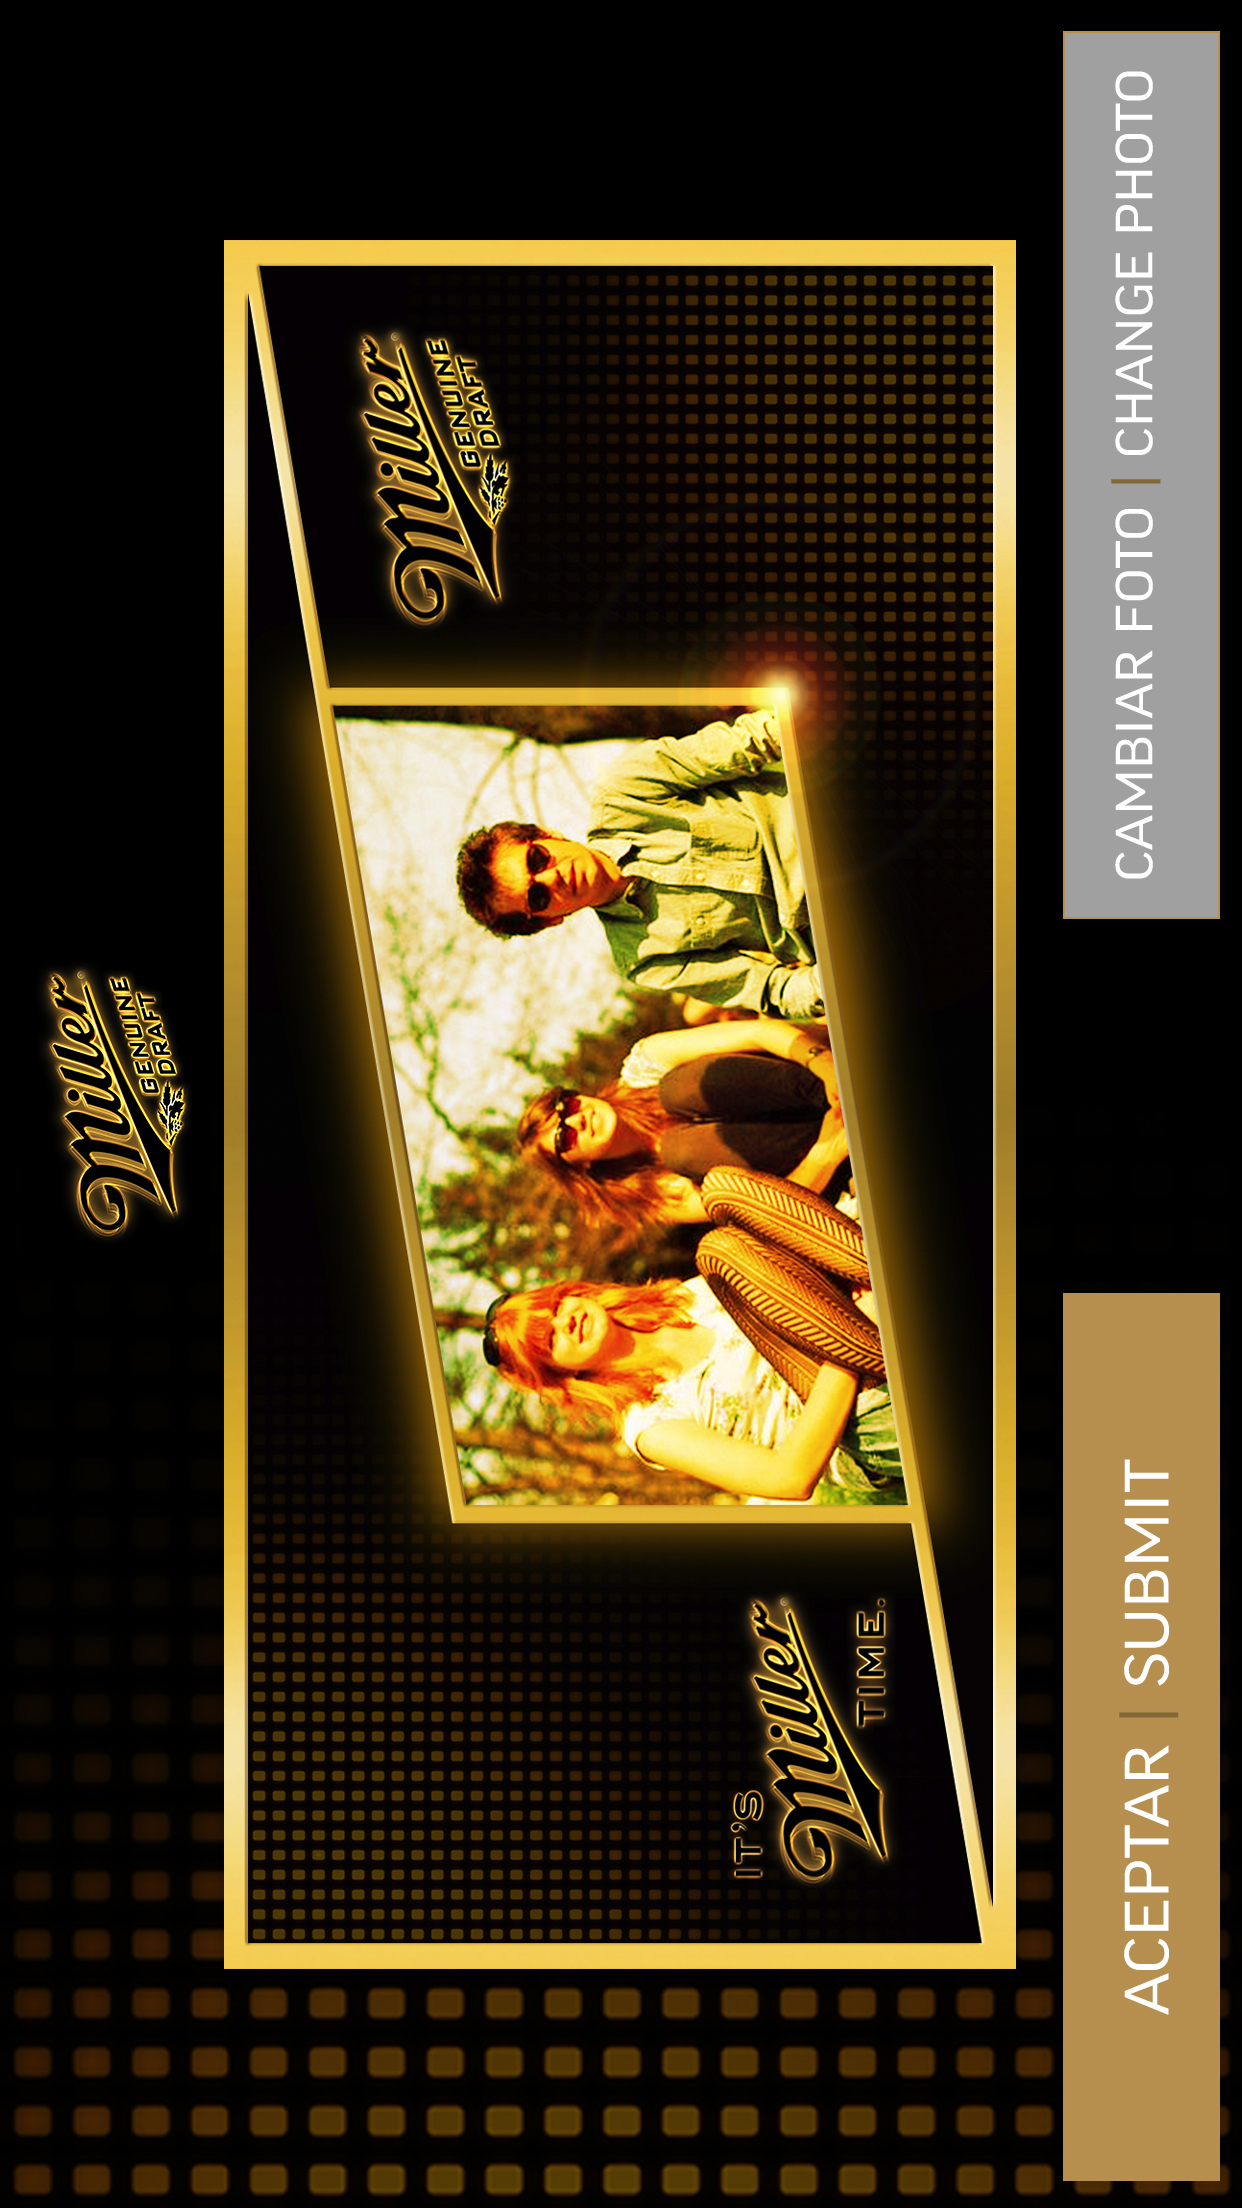 Miller_PersonalizedLabel_Mobile_Preview_Horizontal.jpg